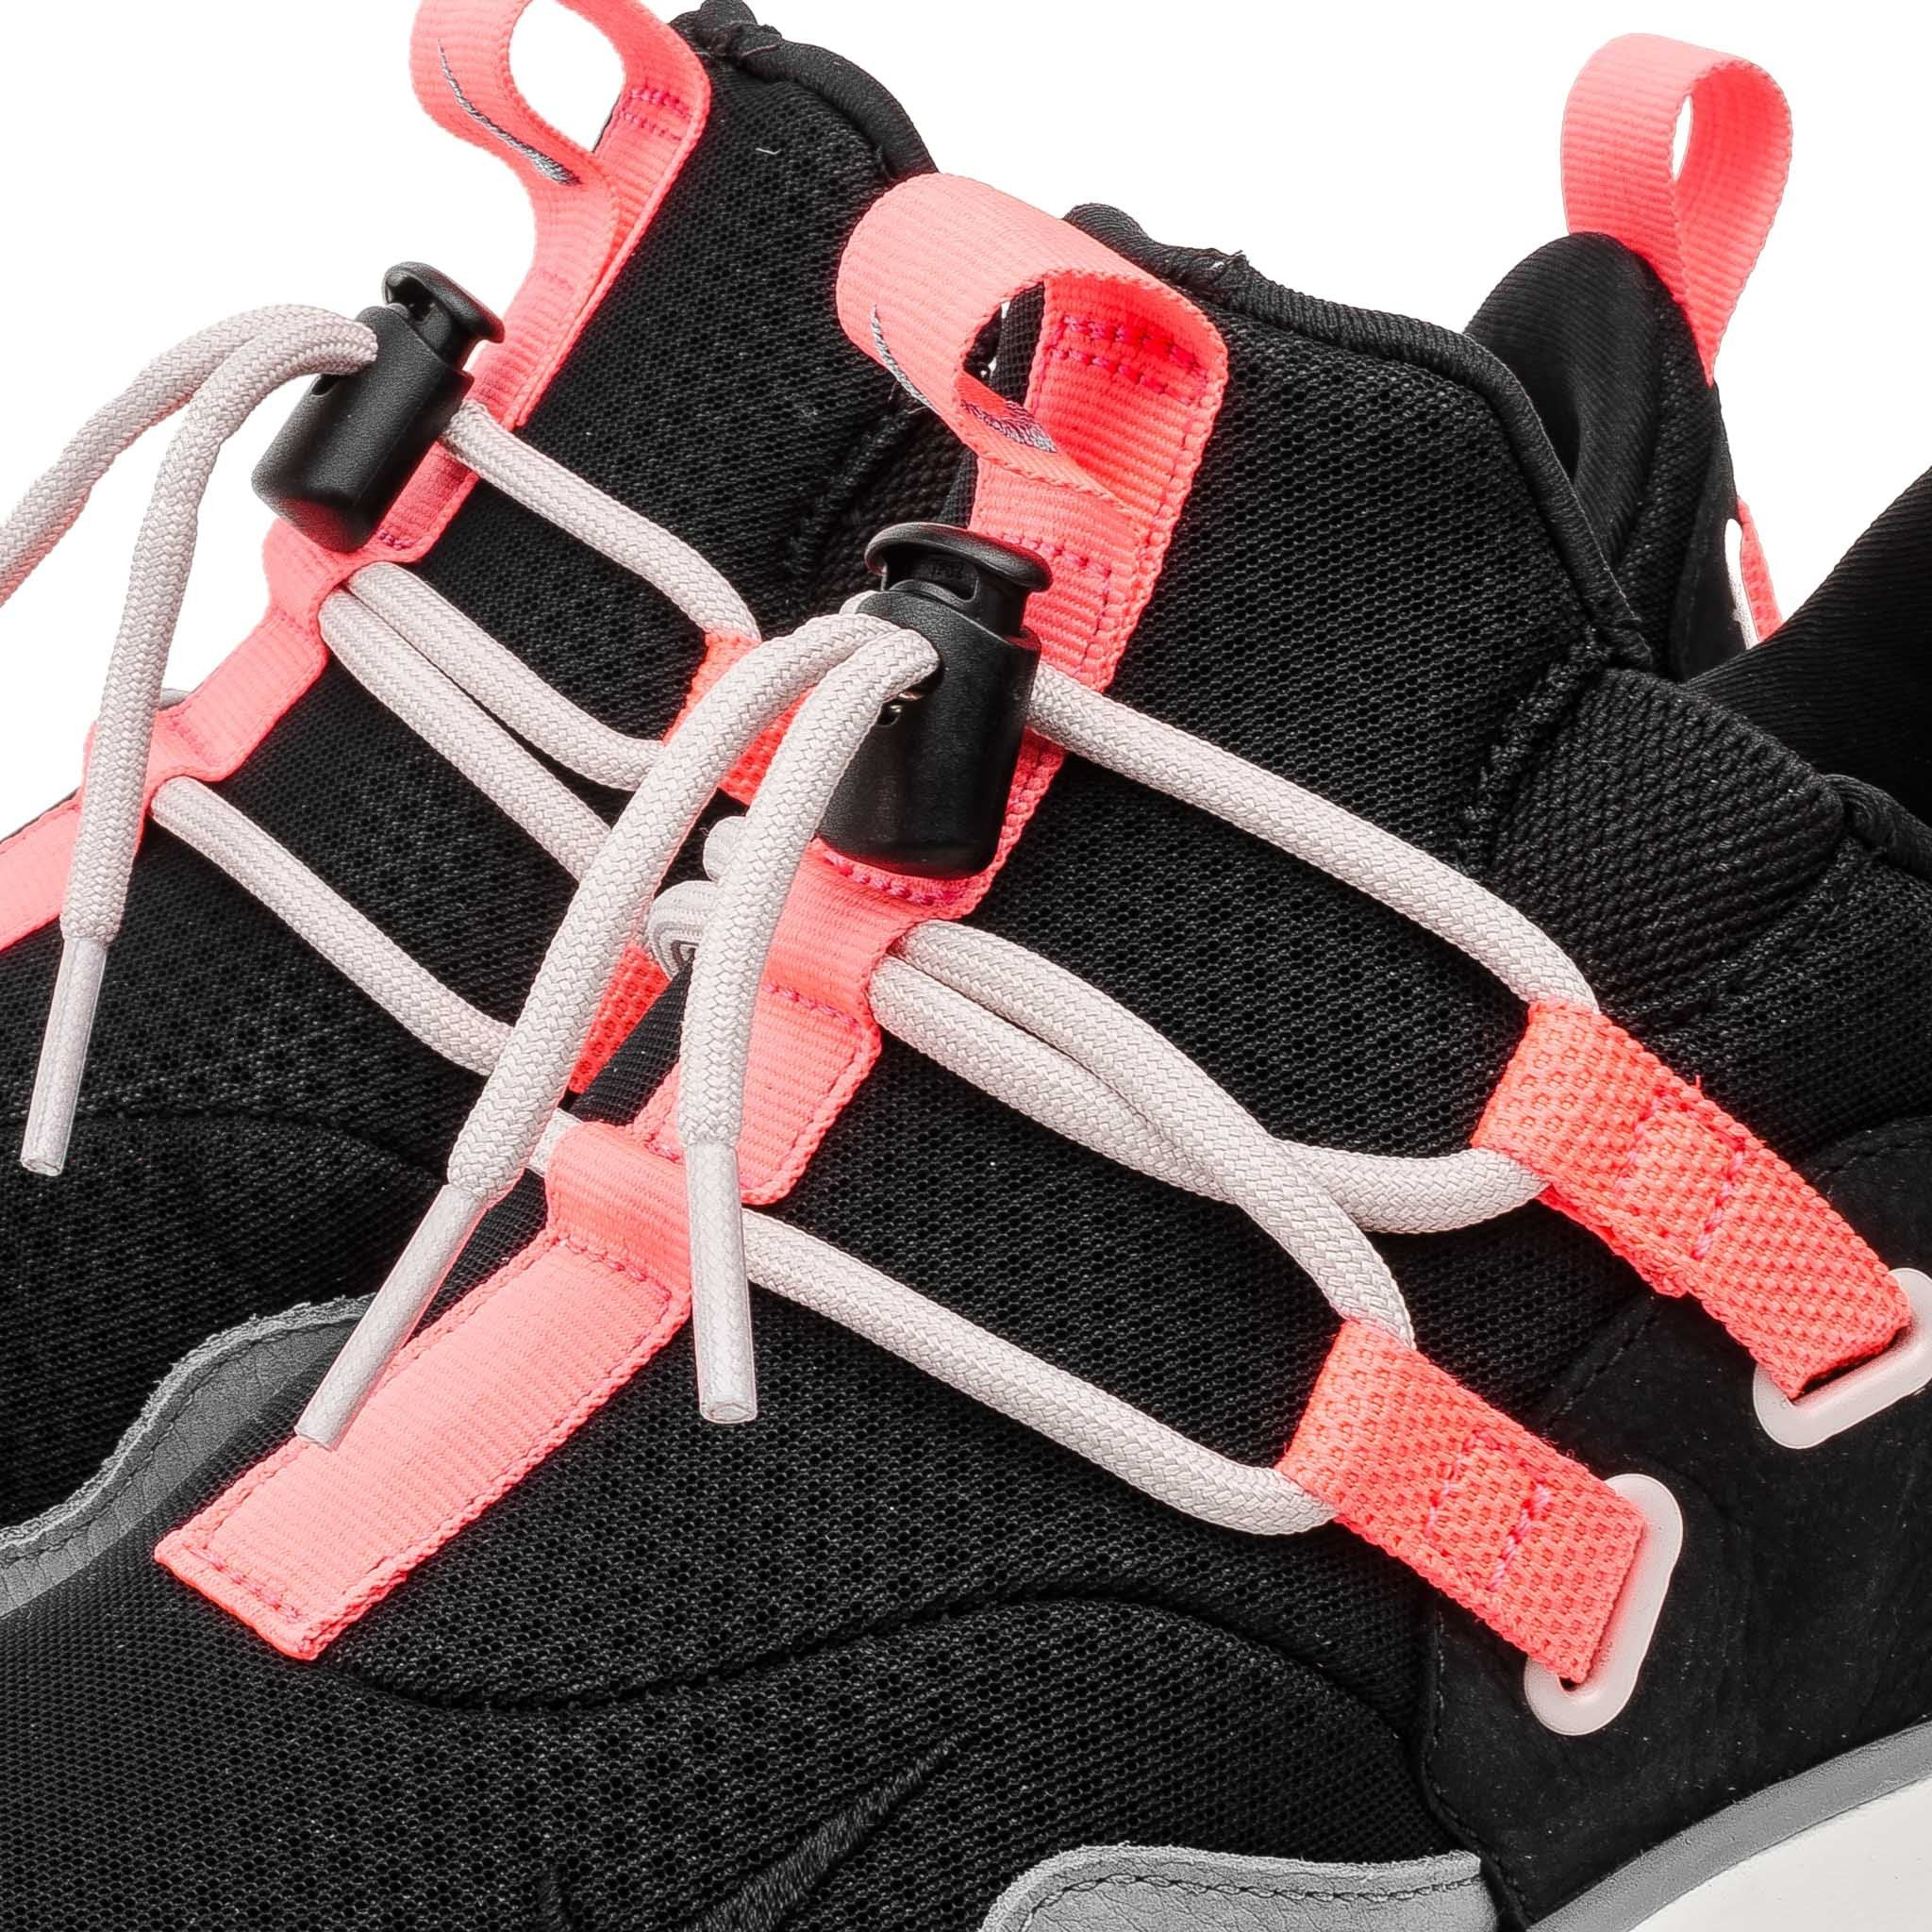 NIKELAB Pocketknife DM 910571-001 Black